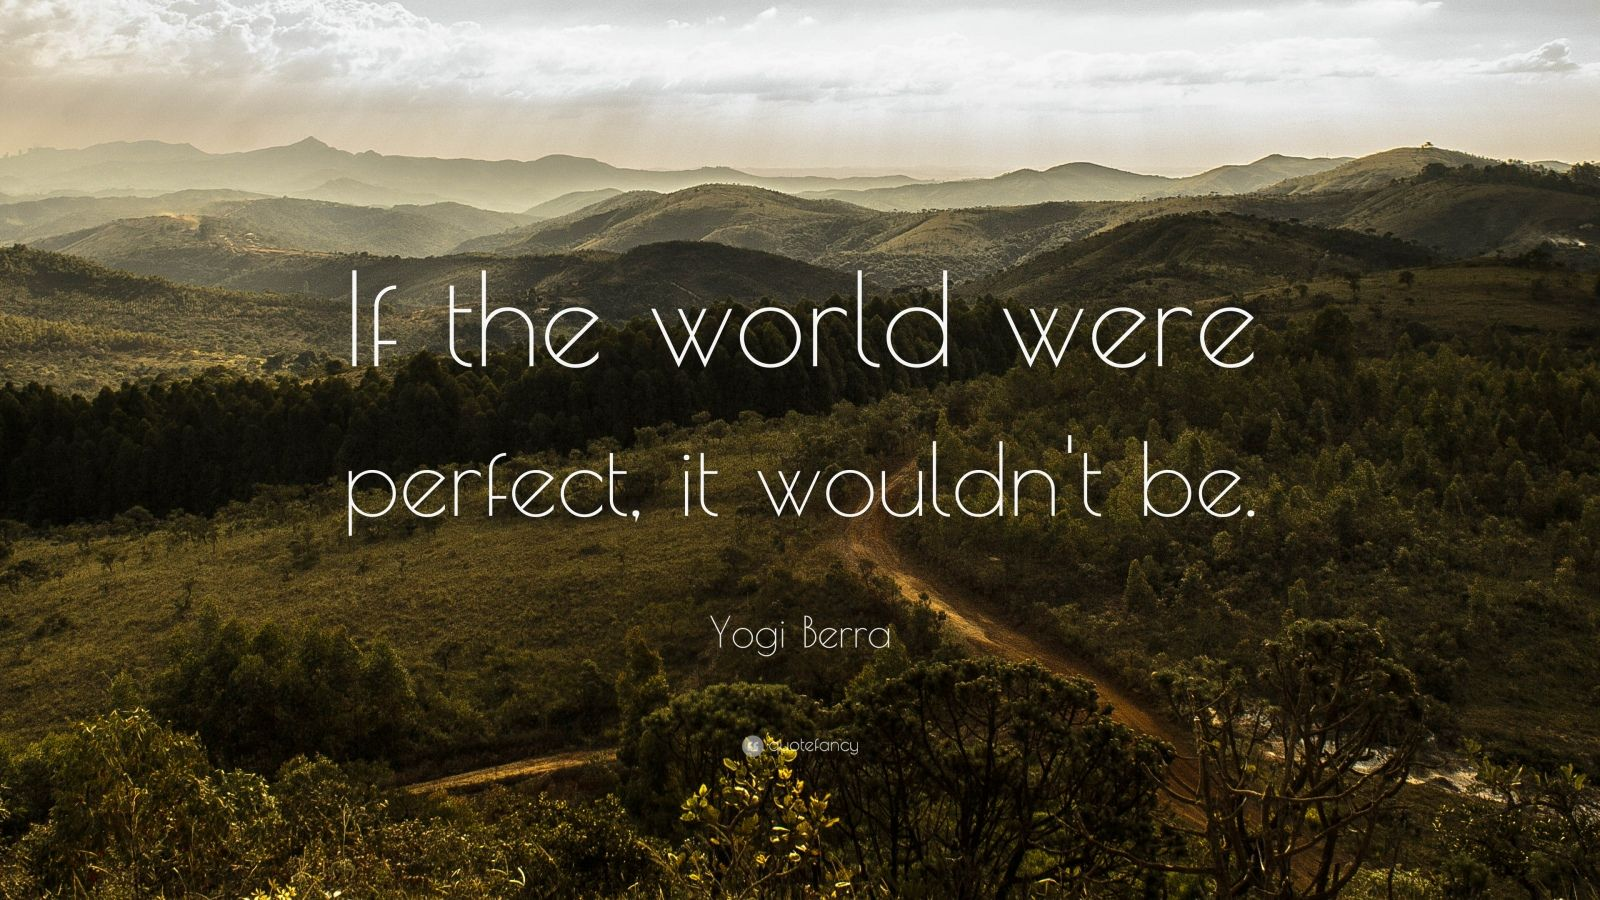 """Yogi Berra Quote: """"If the world were perfect, it wouldn't be. """""""